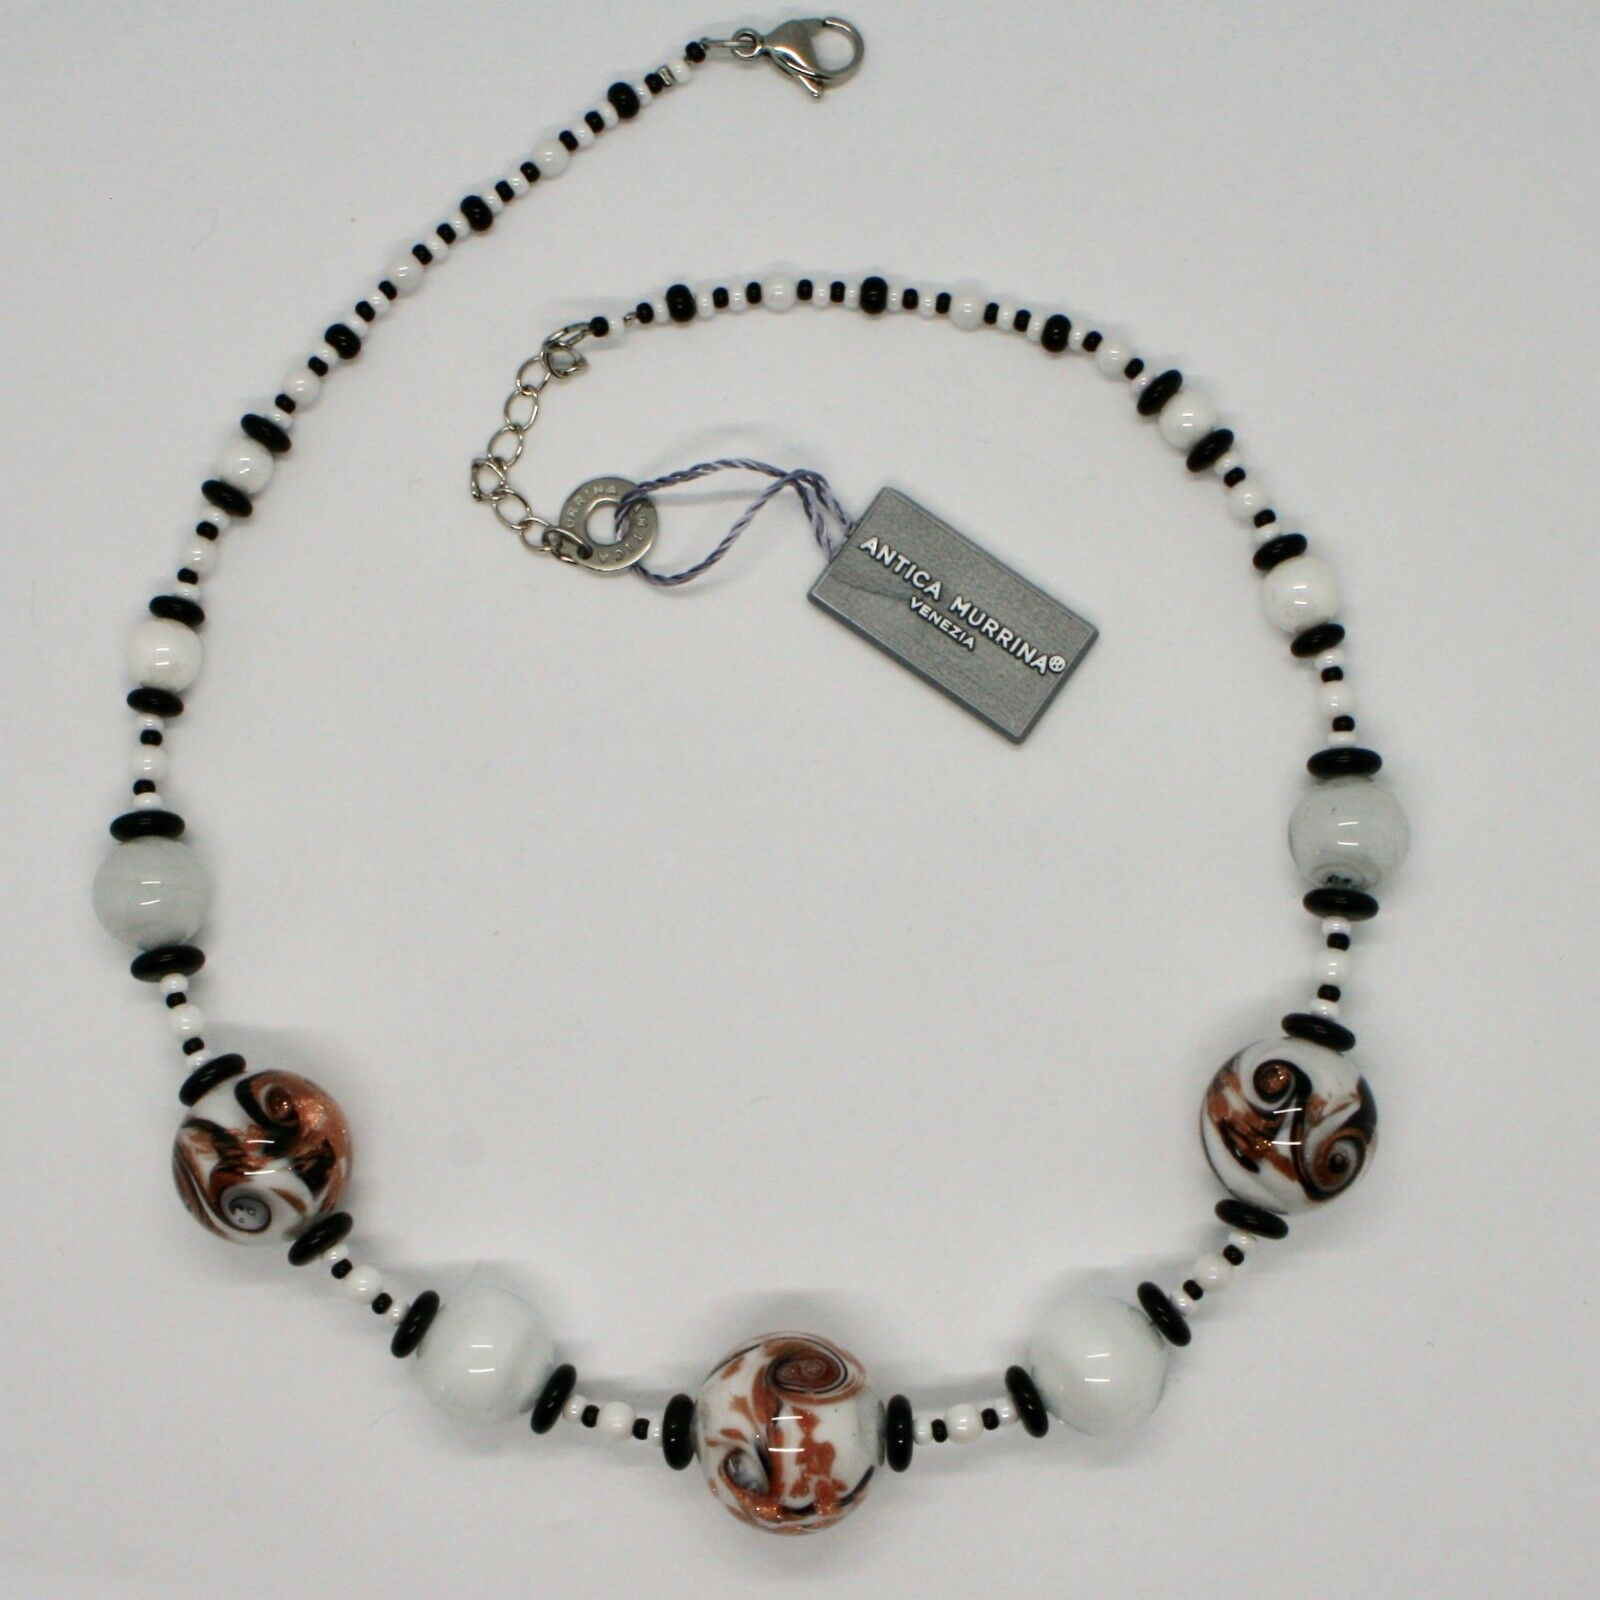 Necklace Antica Murrina Venezia with Murano Glass Black White Orange Coa89a15